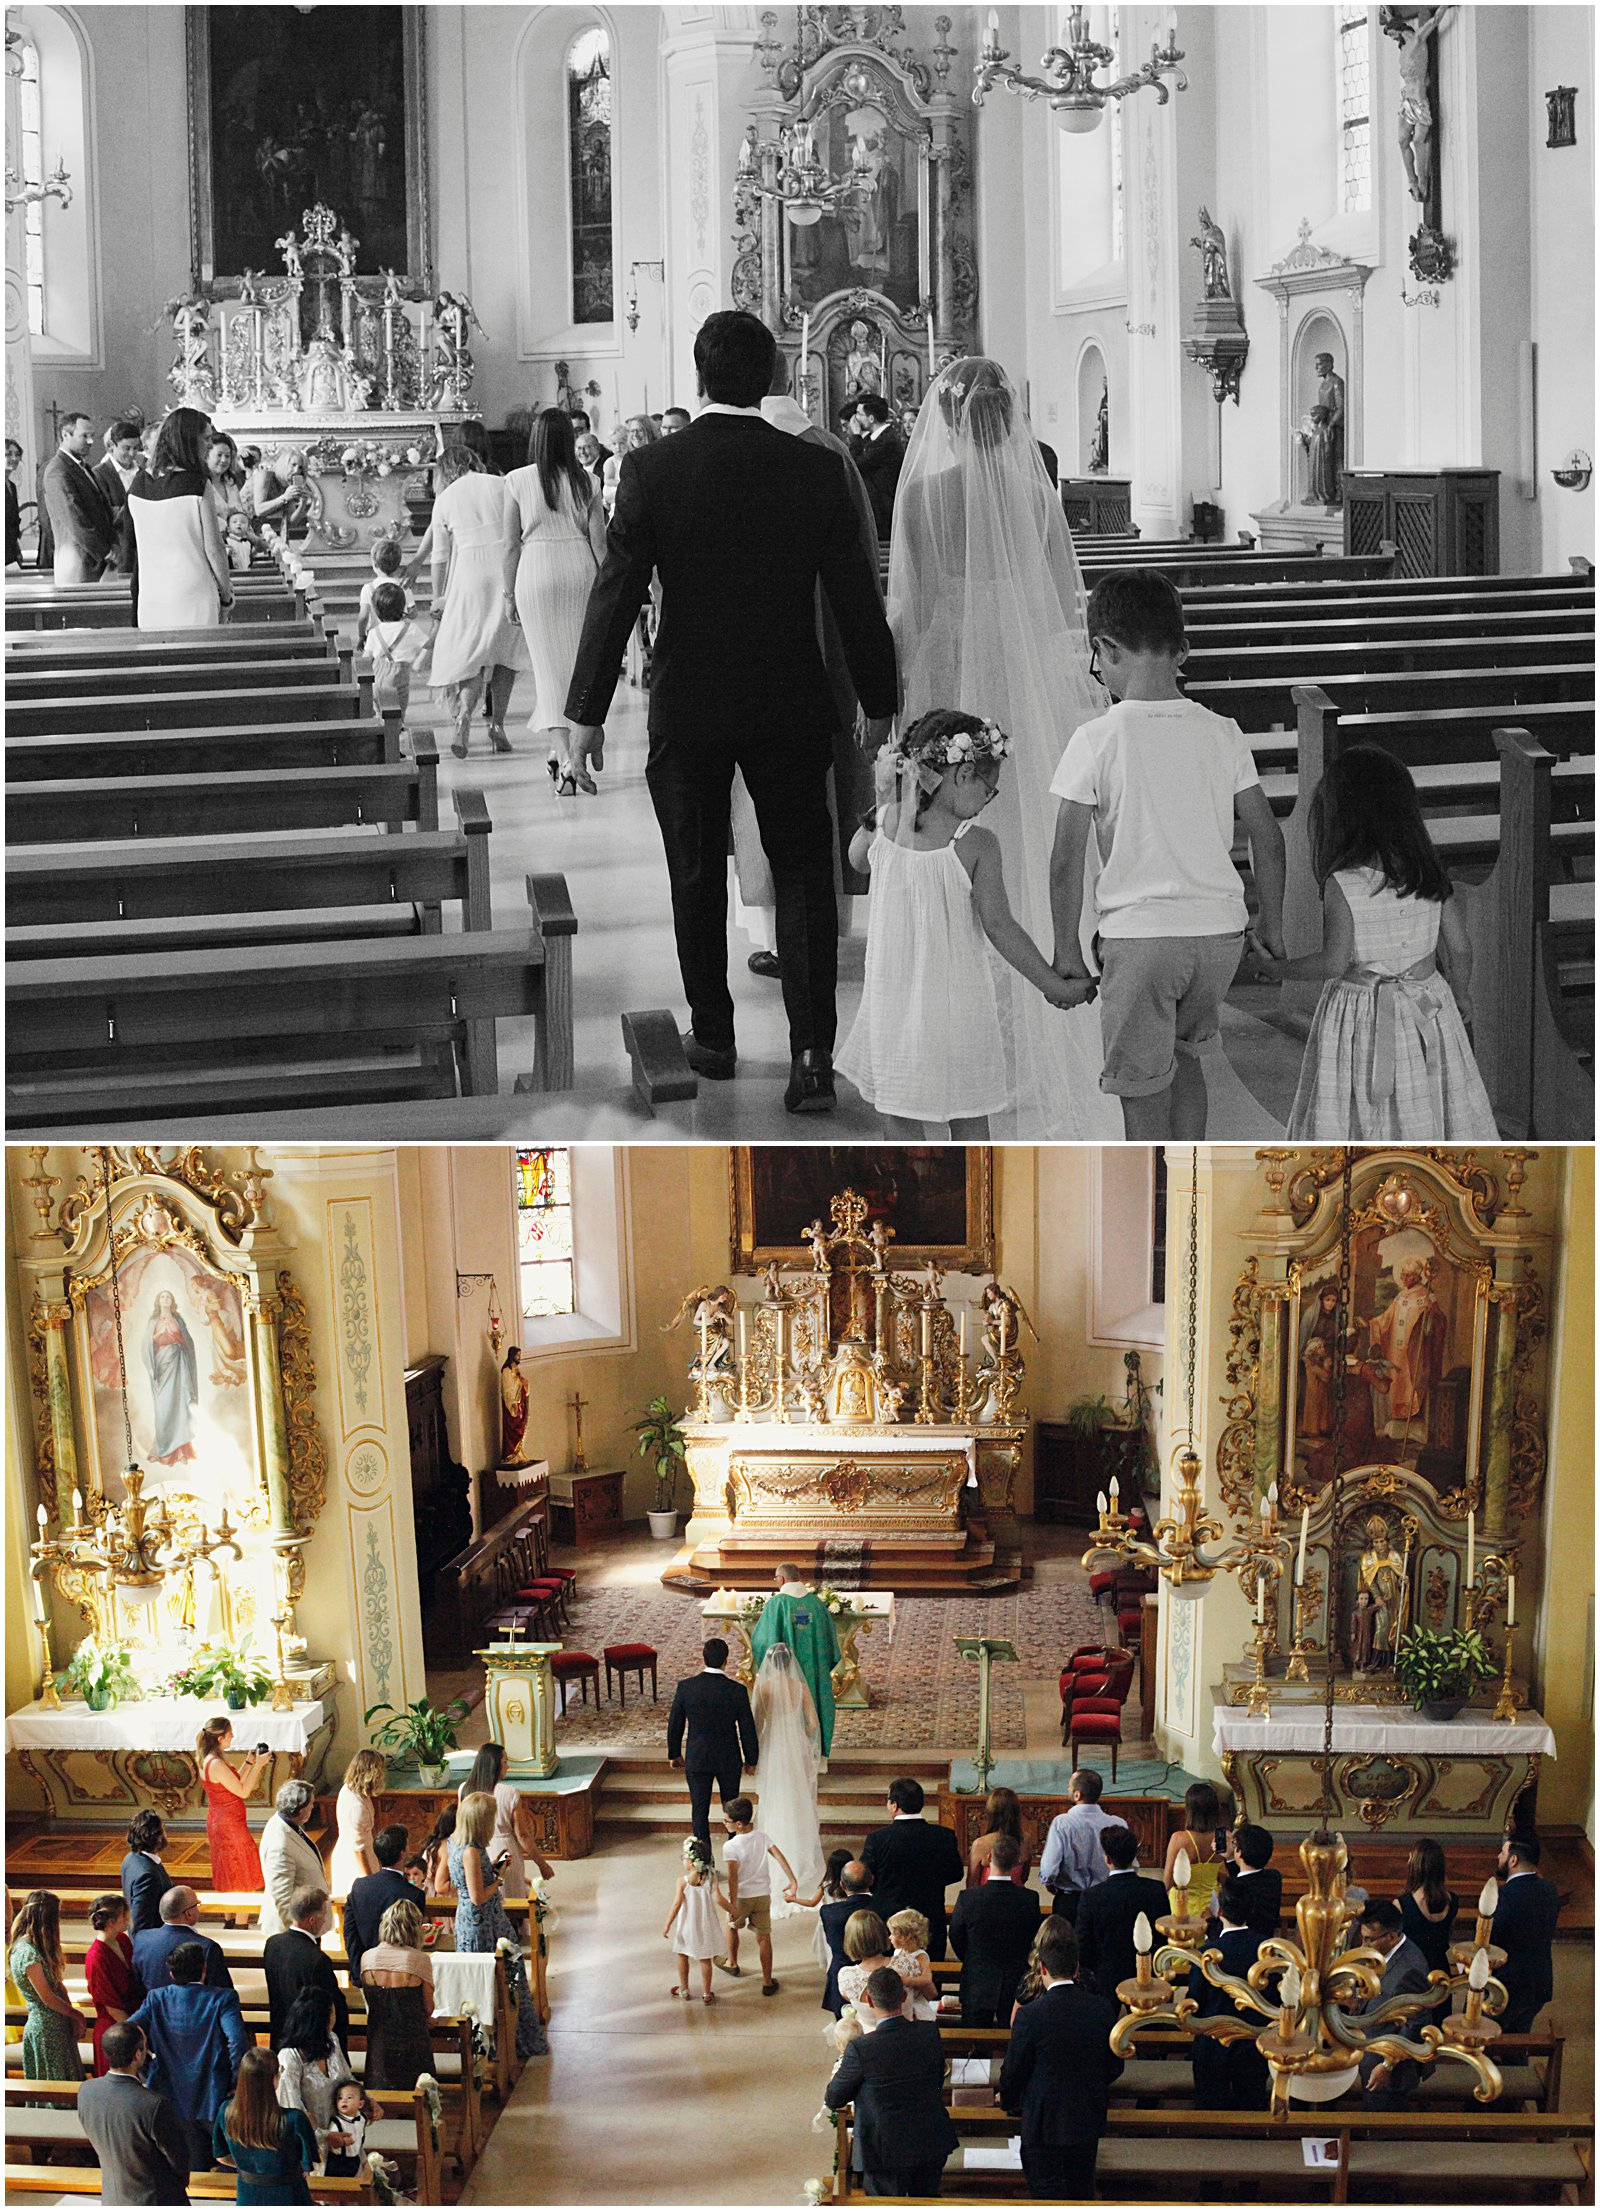 Wedding at Wattwiller Church Alsace France photographed by Helena Woods